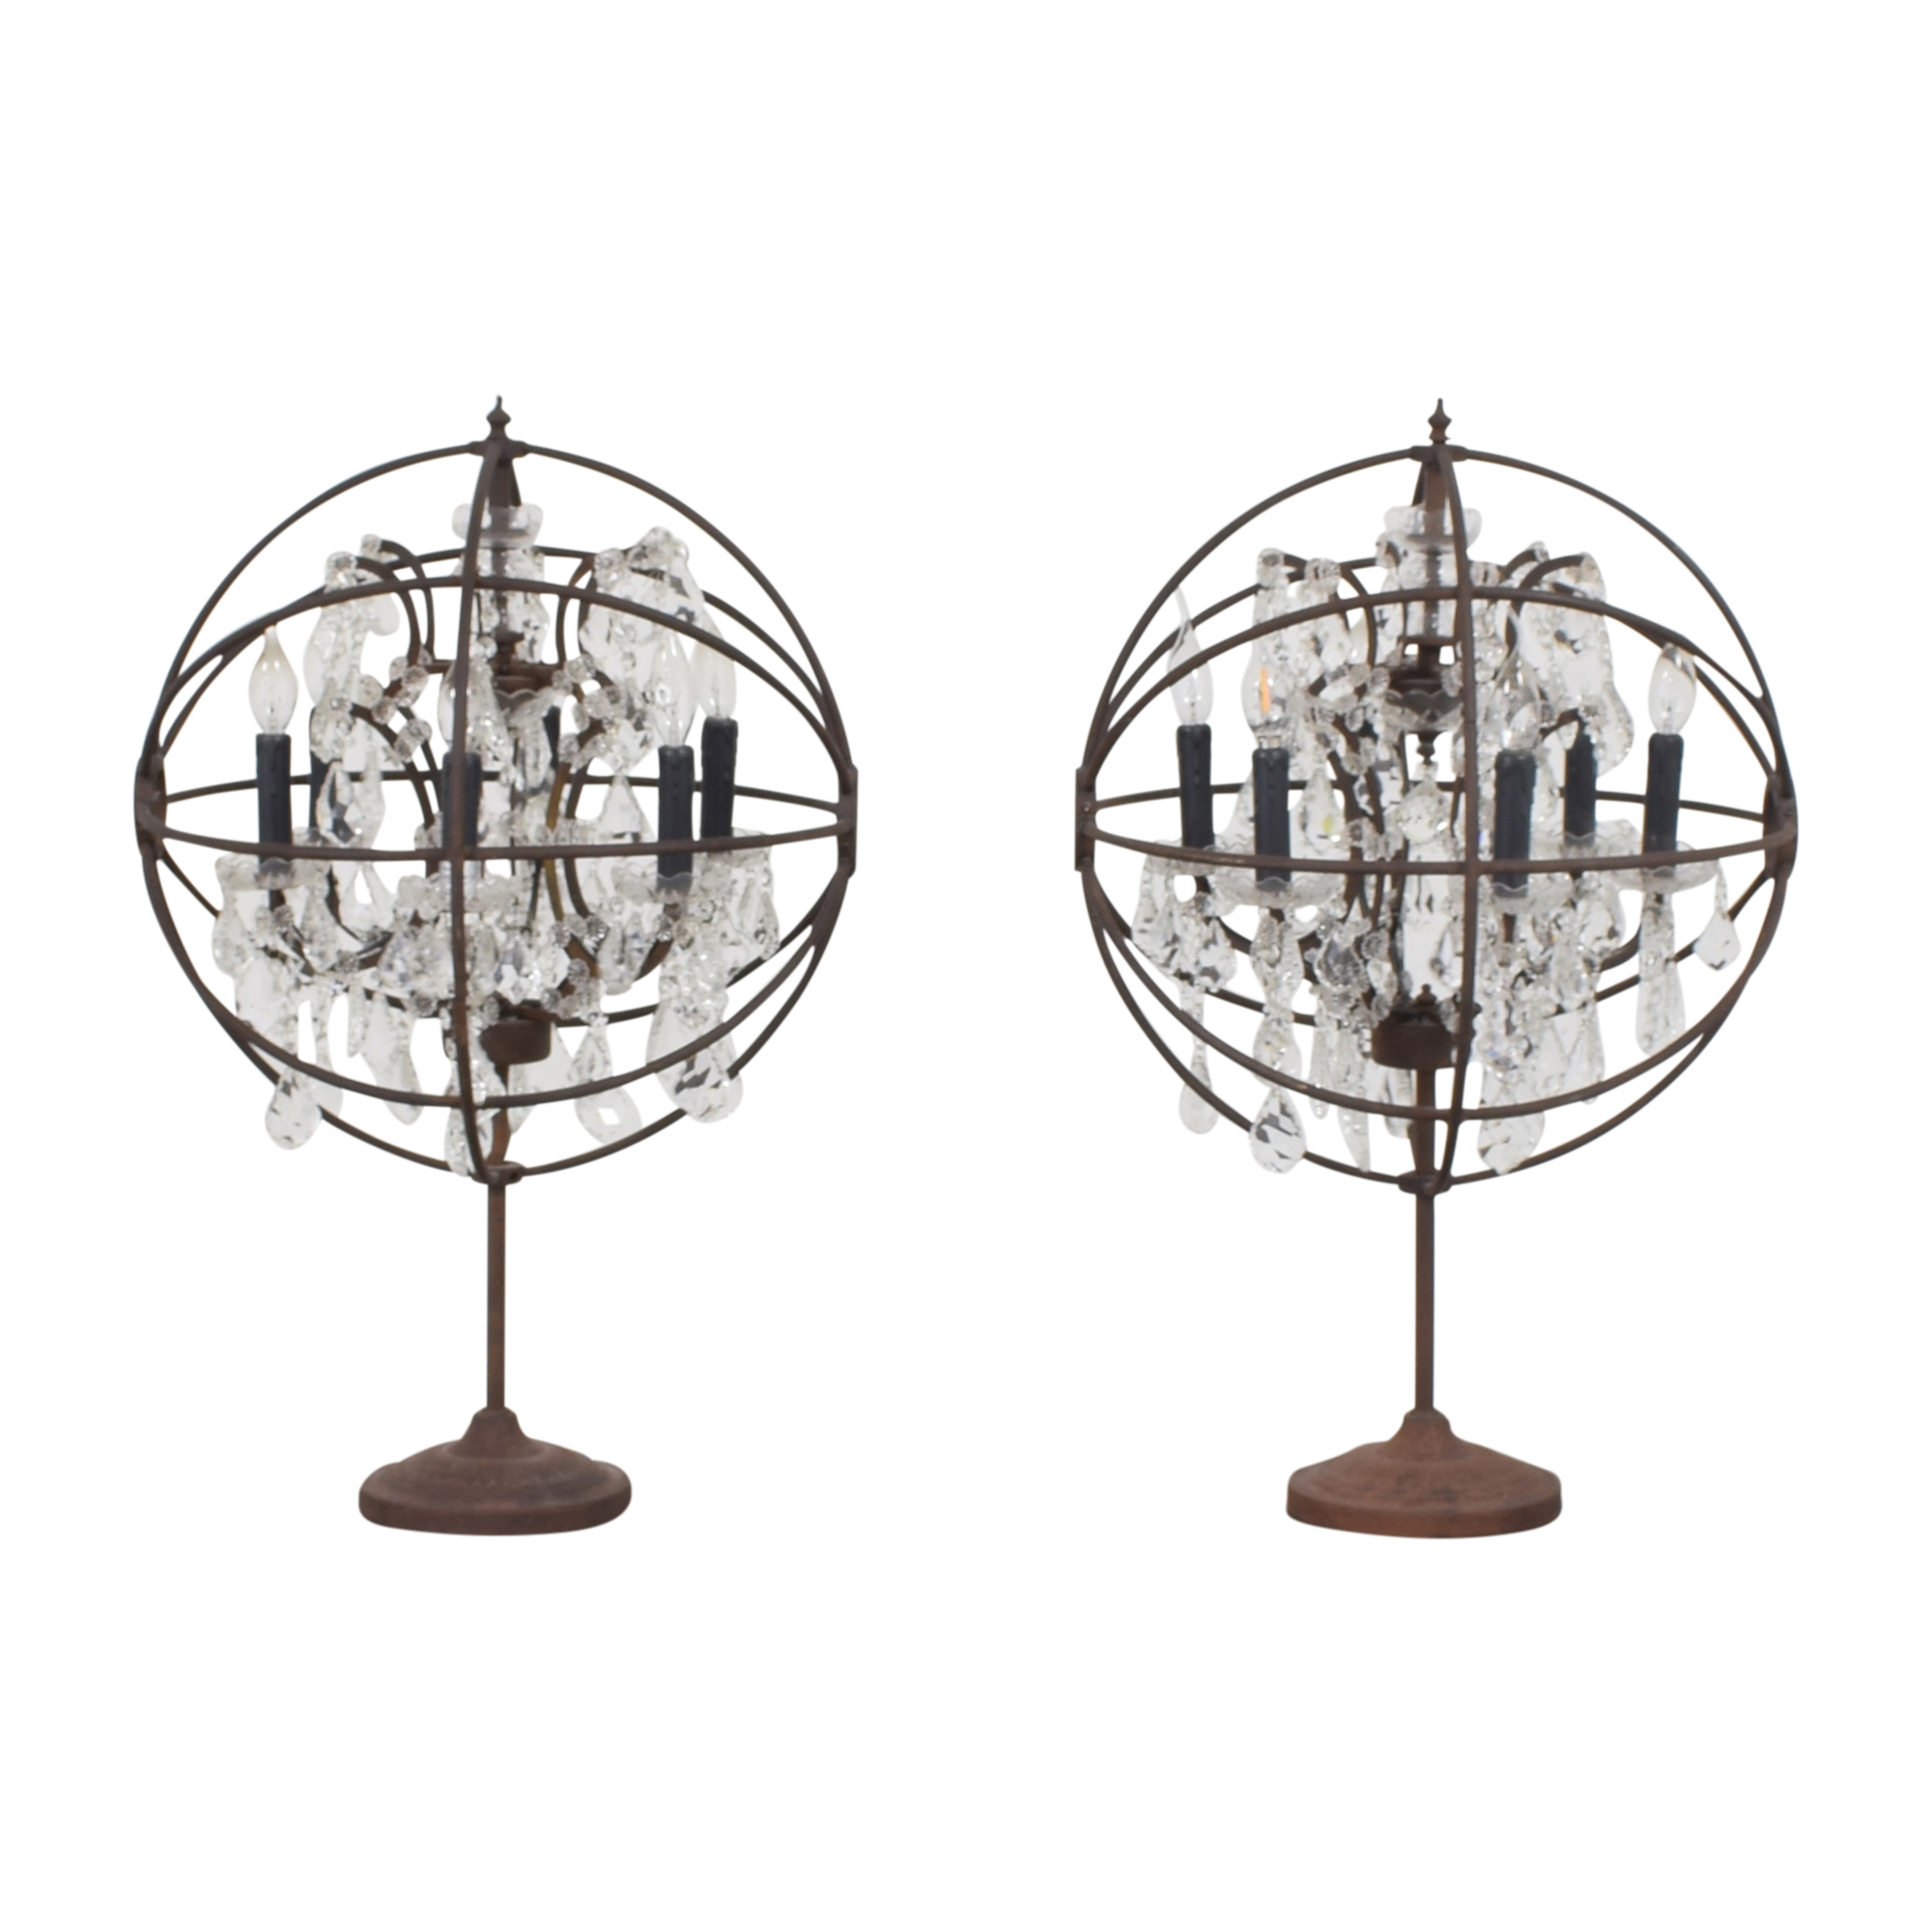 Restoration Hardware Restoration Hardware Foucault's Orb Crystal Table Lamps for sale